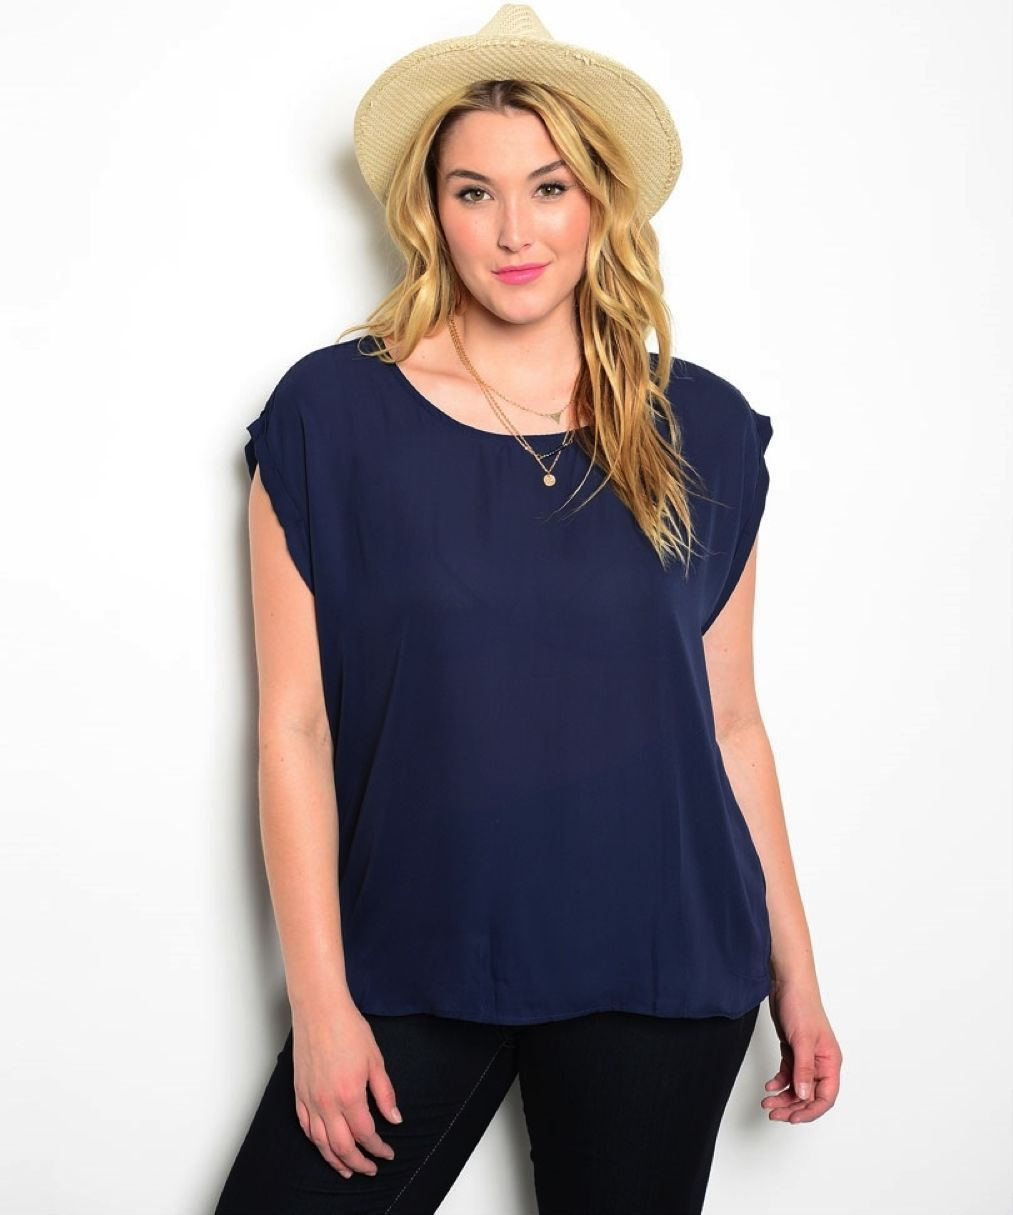 Image 1 of Sexy Romantic Flirty Navy Blue Chiffon Plus Party Club Tunic Top, Peep Open Back